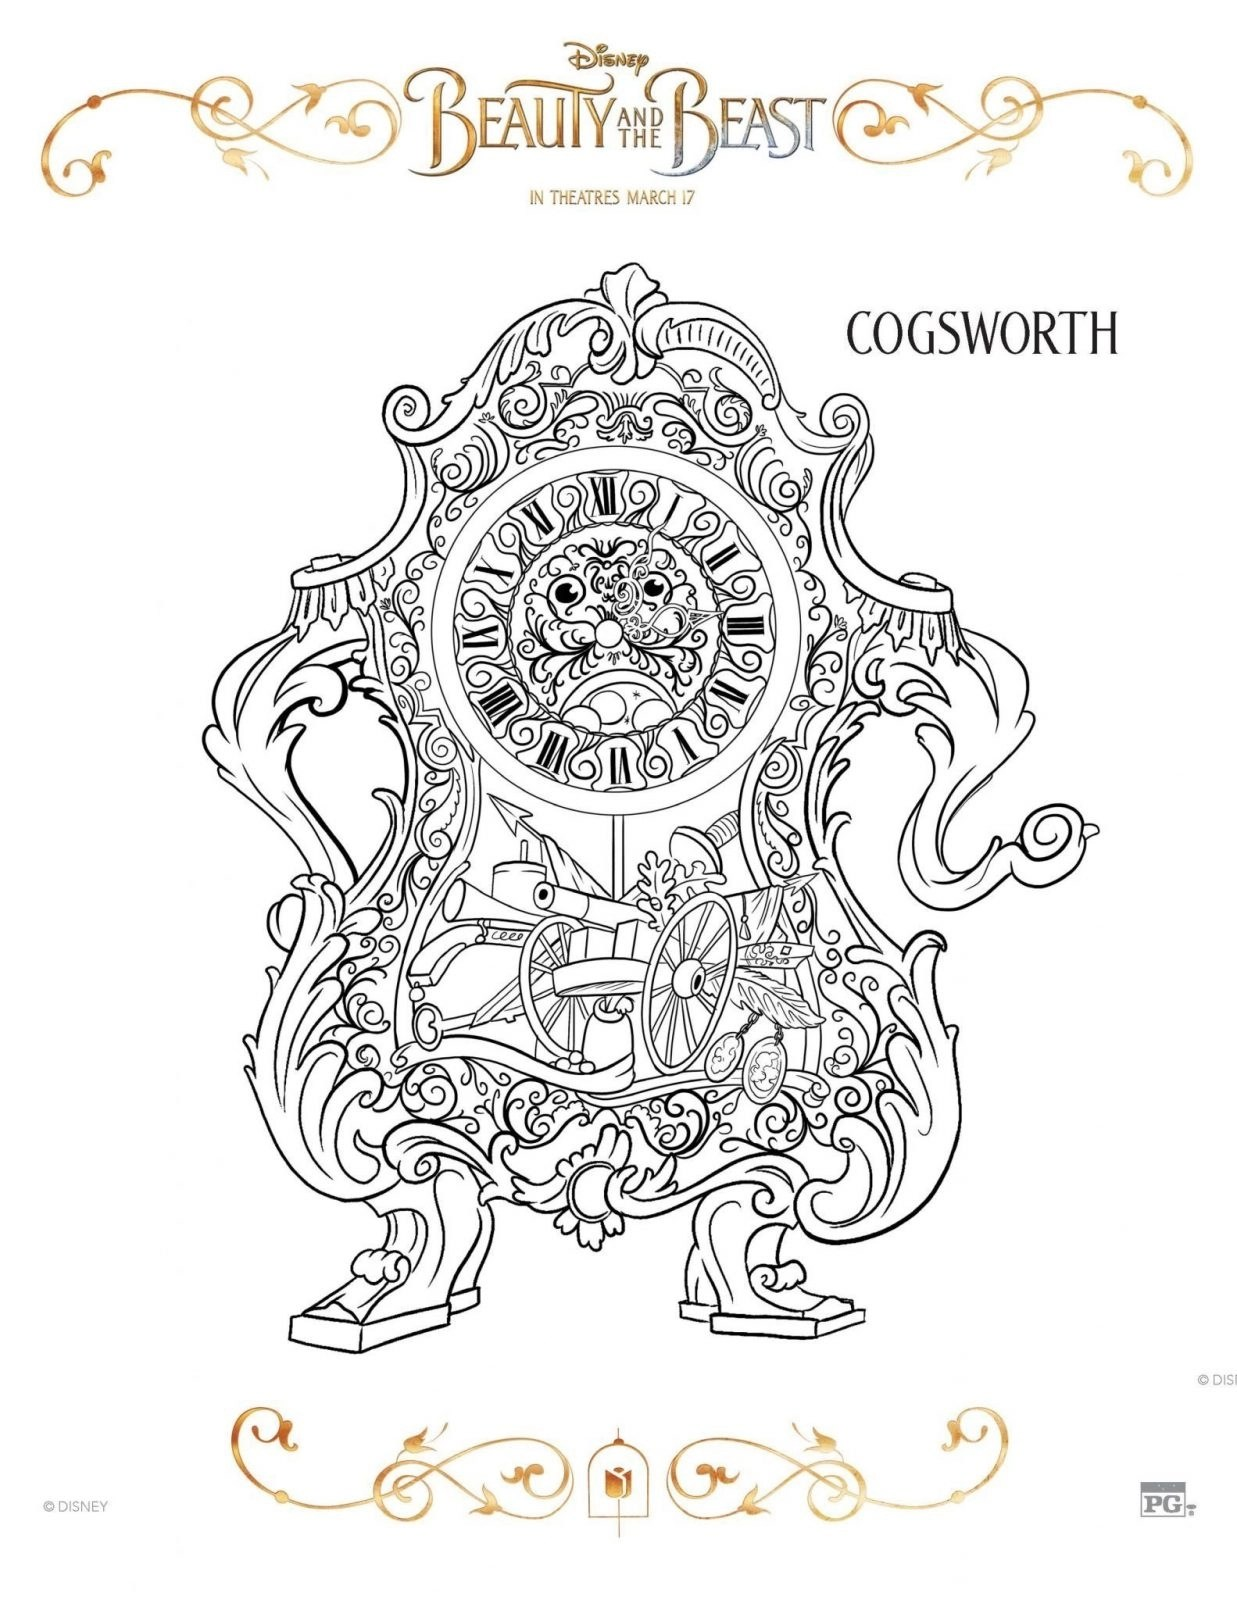 Cogsworth Beauty and Beast Coloring Sheet